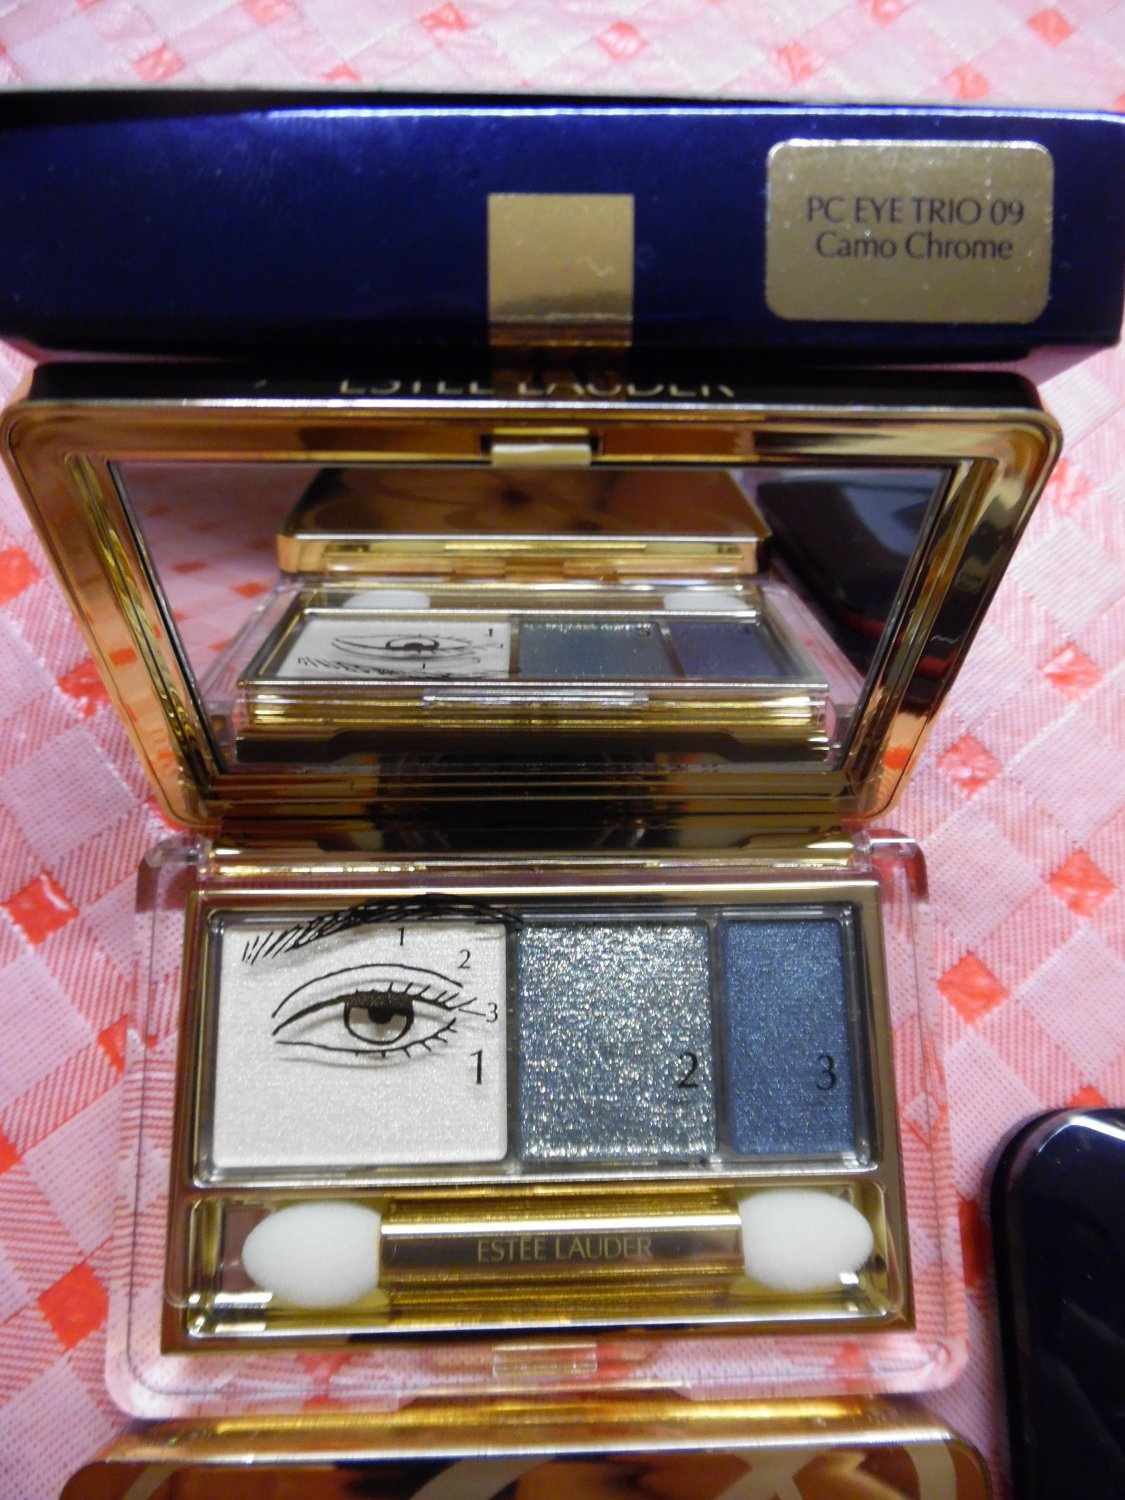 ESTEE LAUDER Pure Color Eye Trio 09 Camo Chrome